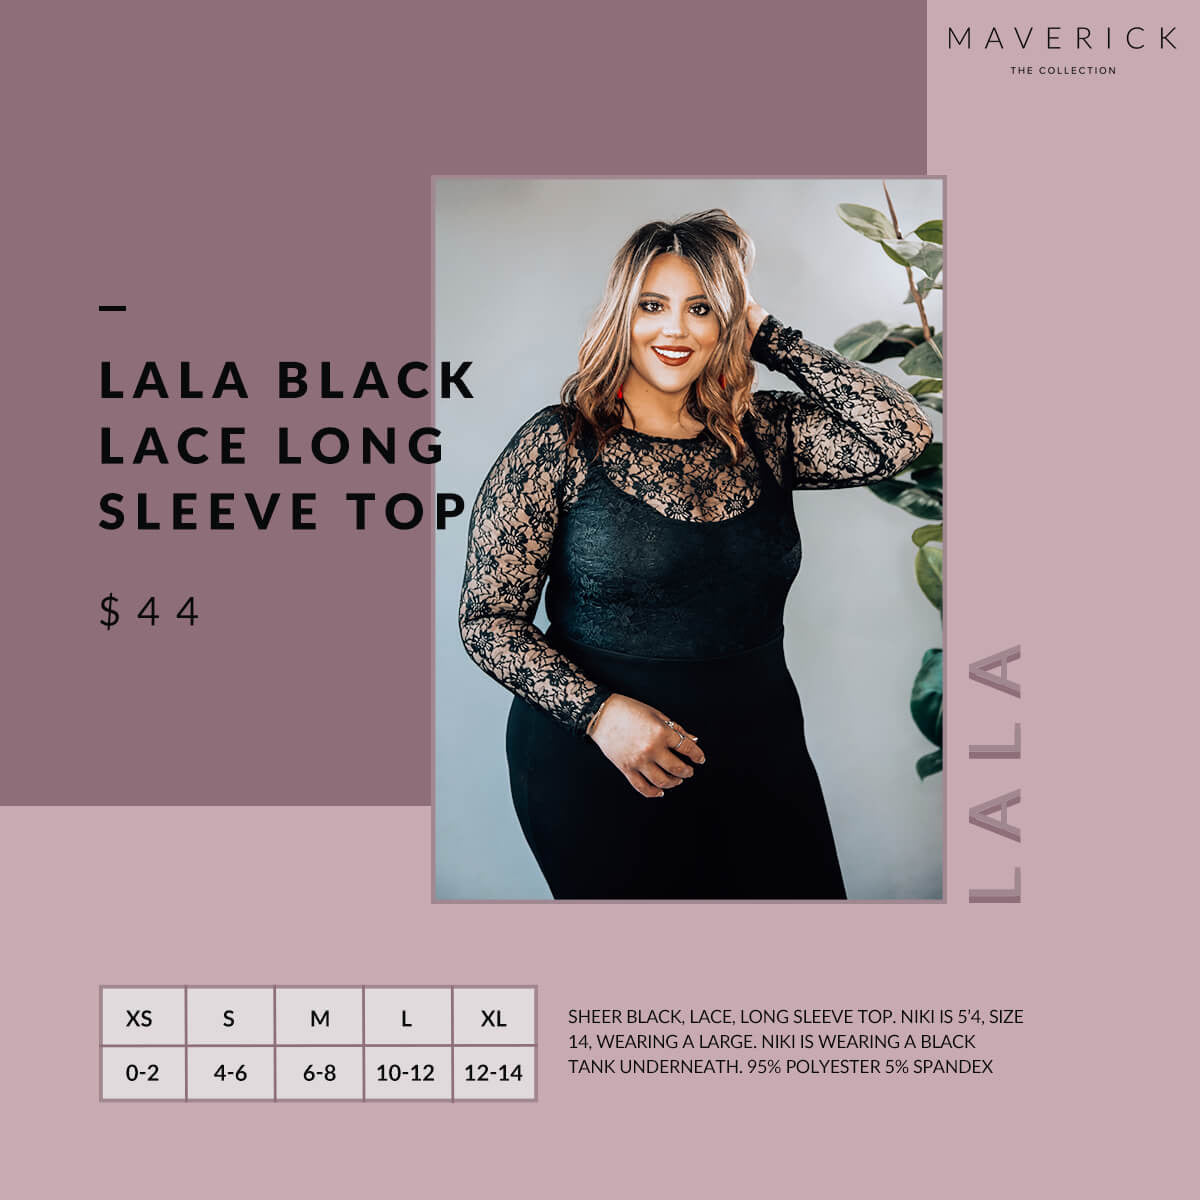 Lala - Black Sheer Lace Long Sleeve